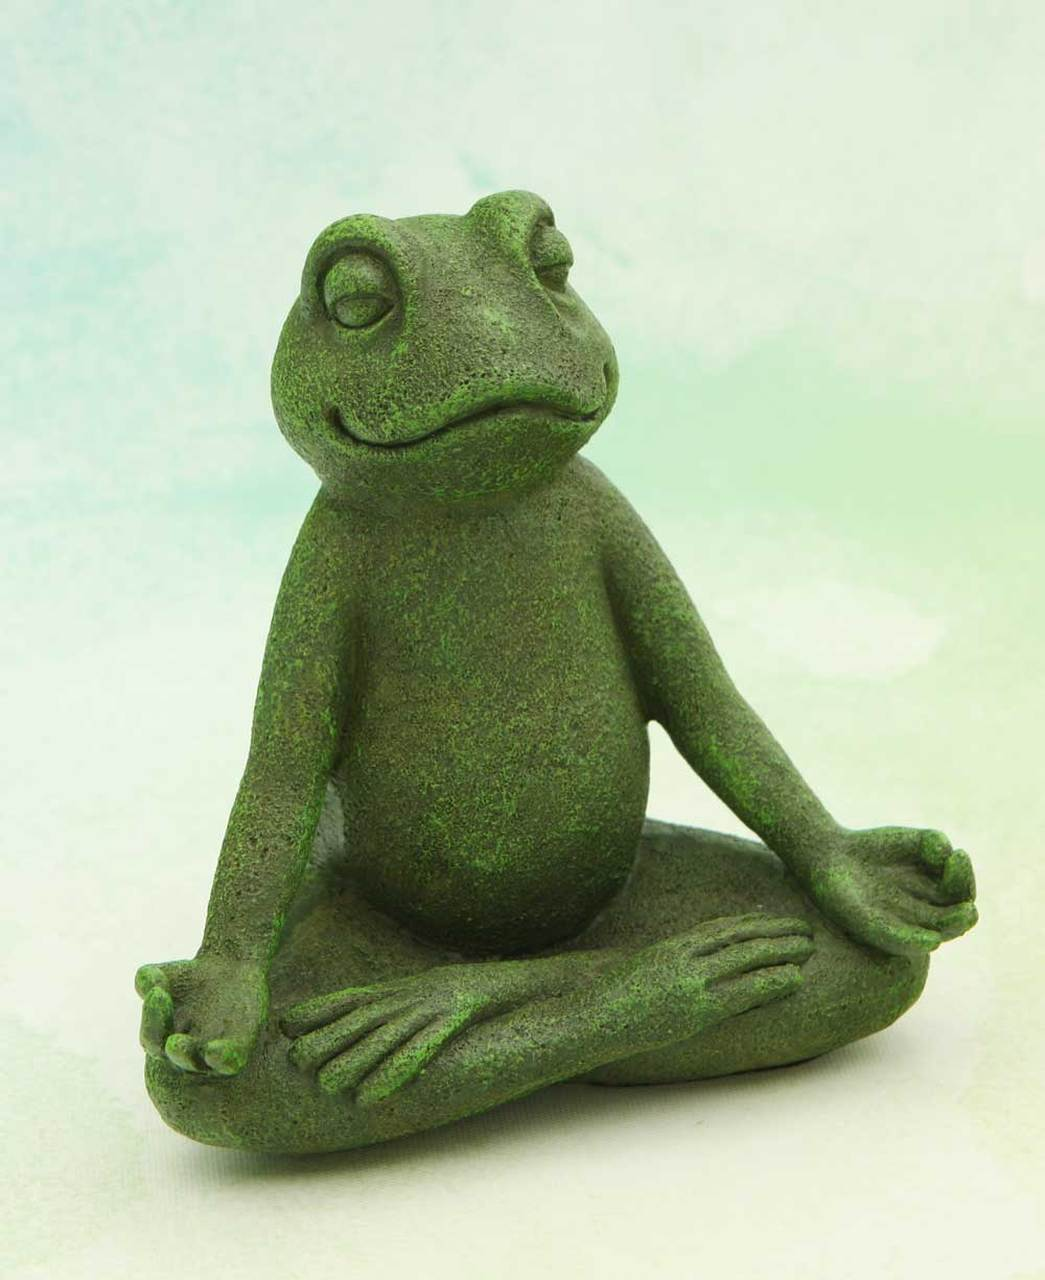 Meditating Frog Garden Statue, 6 Inches